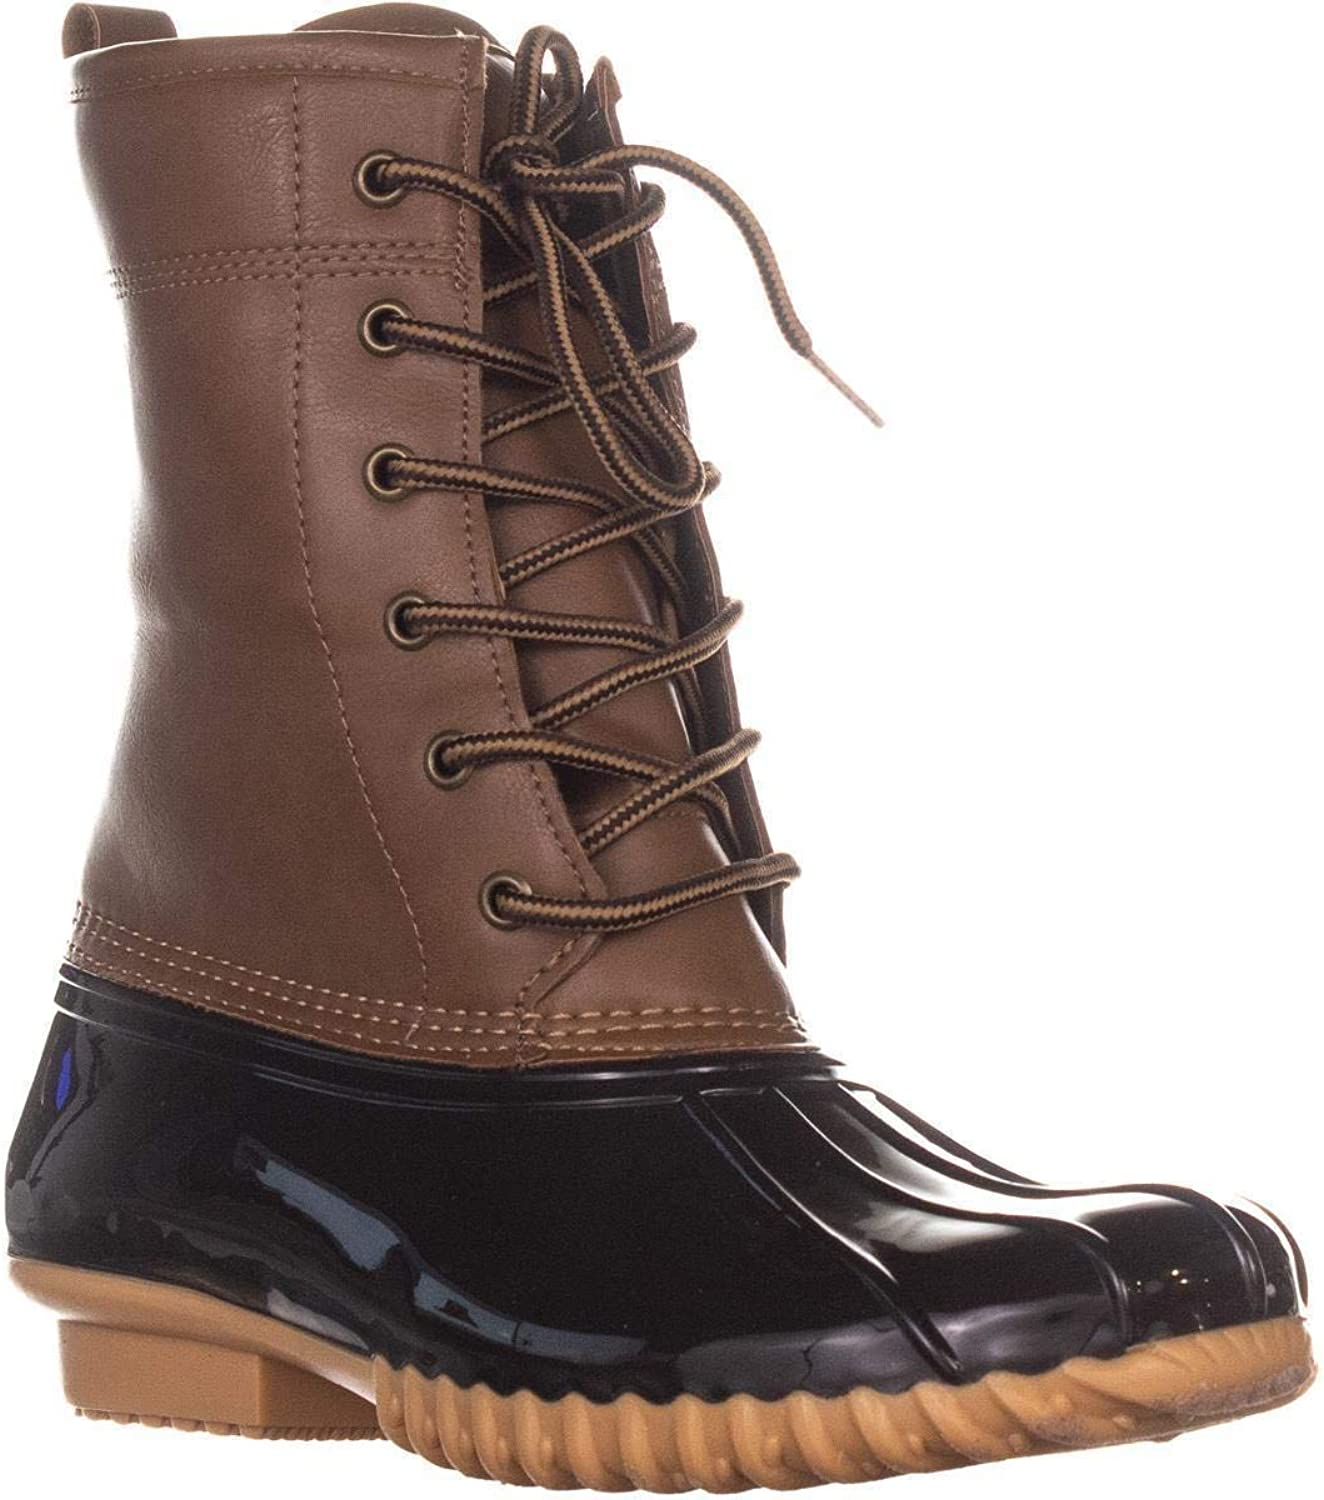 Sporto Ariel Lace Up Duck Rain Boots, Tan Brown